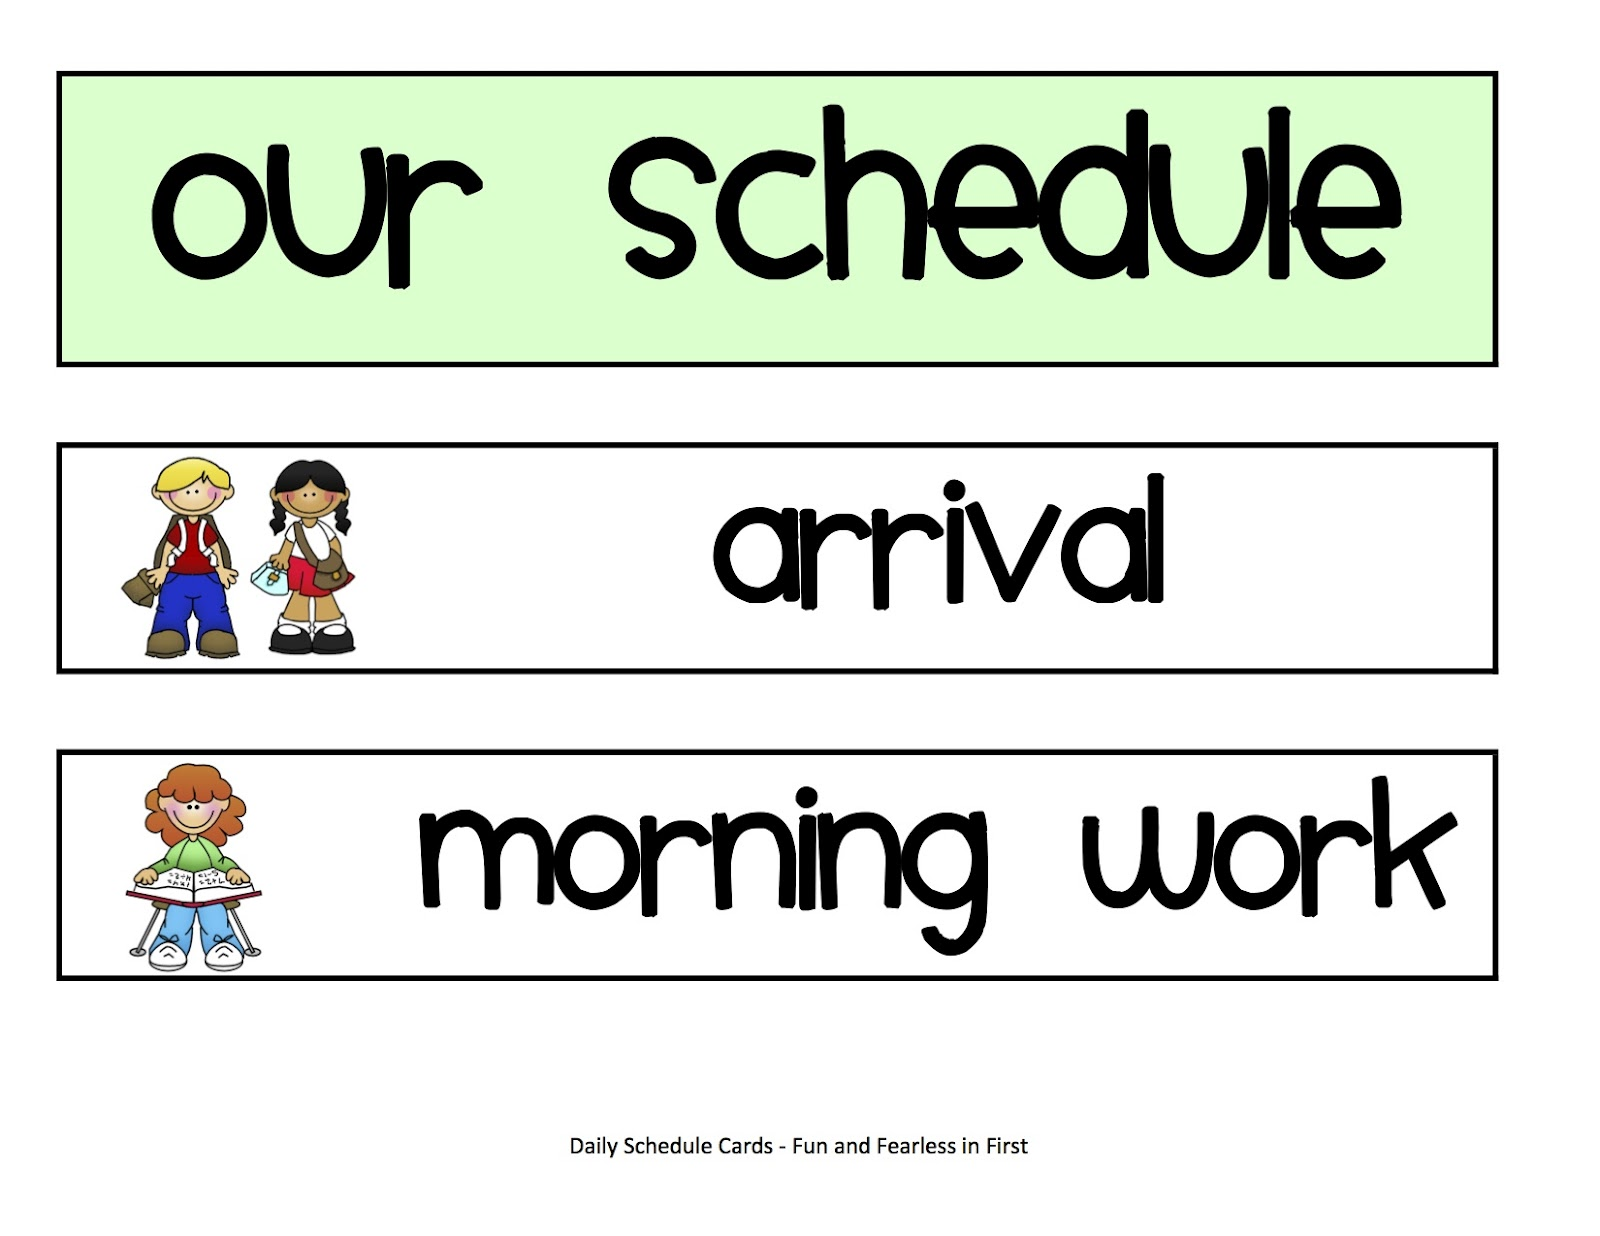 Daily Schedule Cards Again